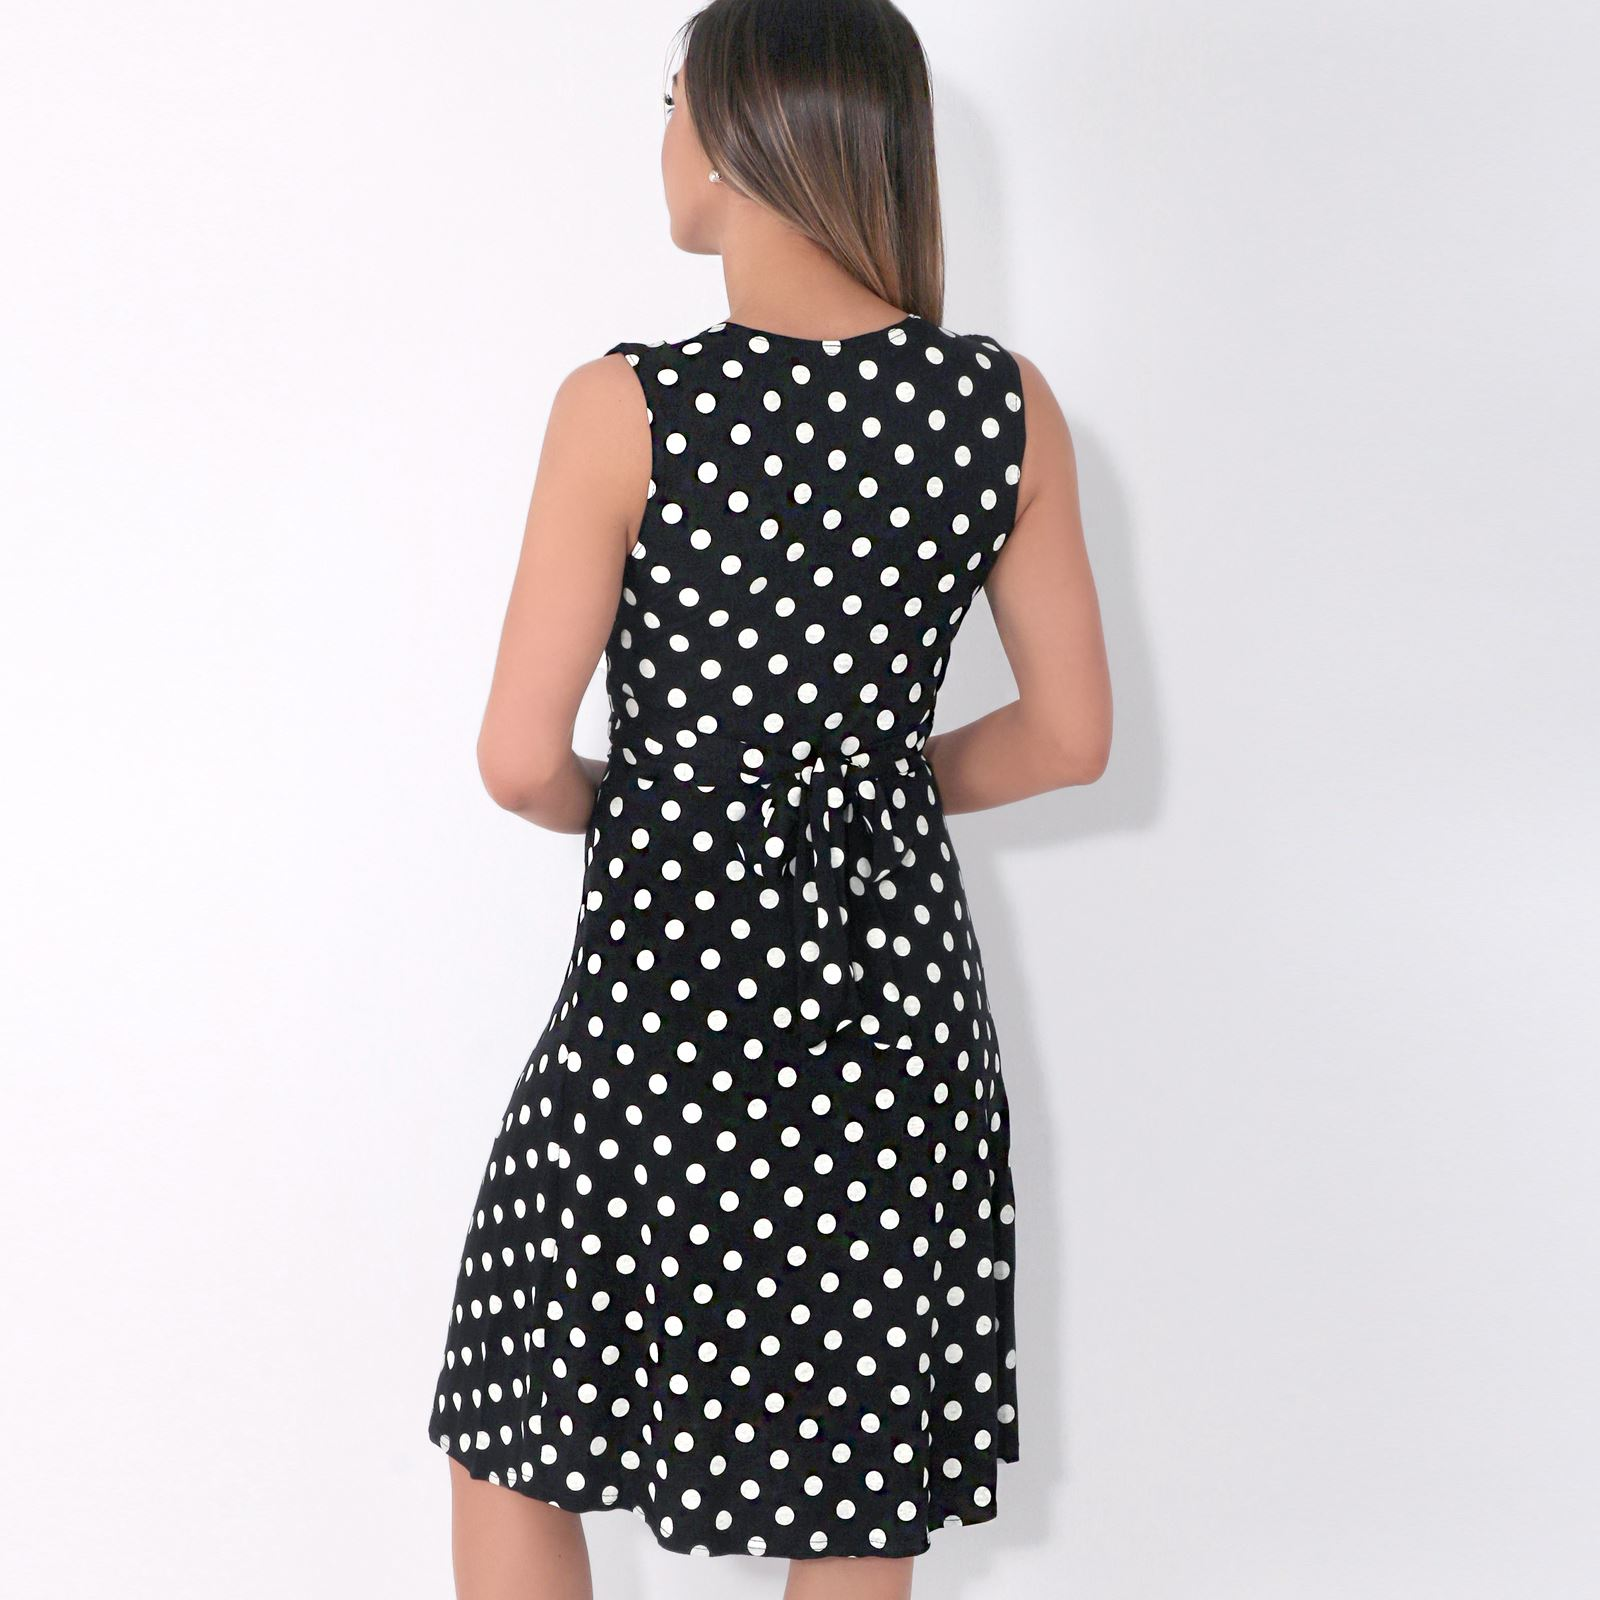 Womens-Polka-Dot-Retro-Dress-Pleated-Skirt-Wrap-Mini-V-Neck-Top-Swing-Party thumbnail 7